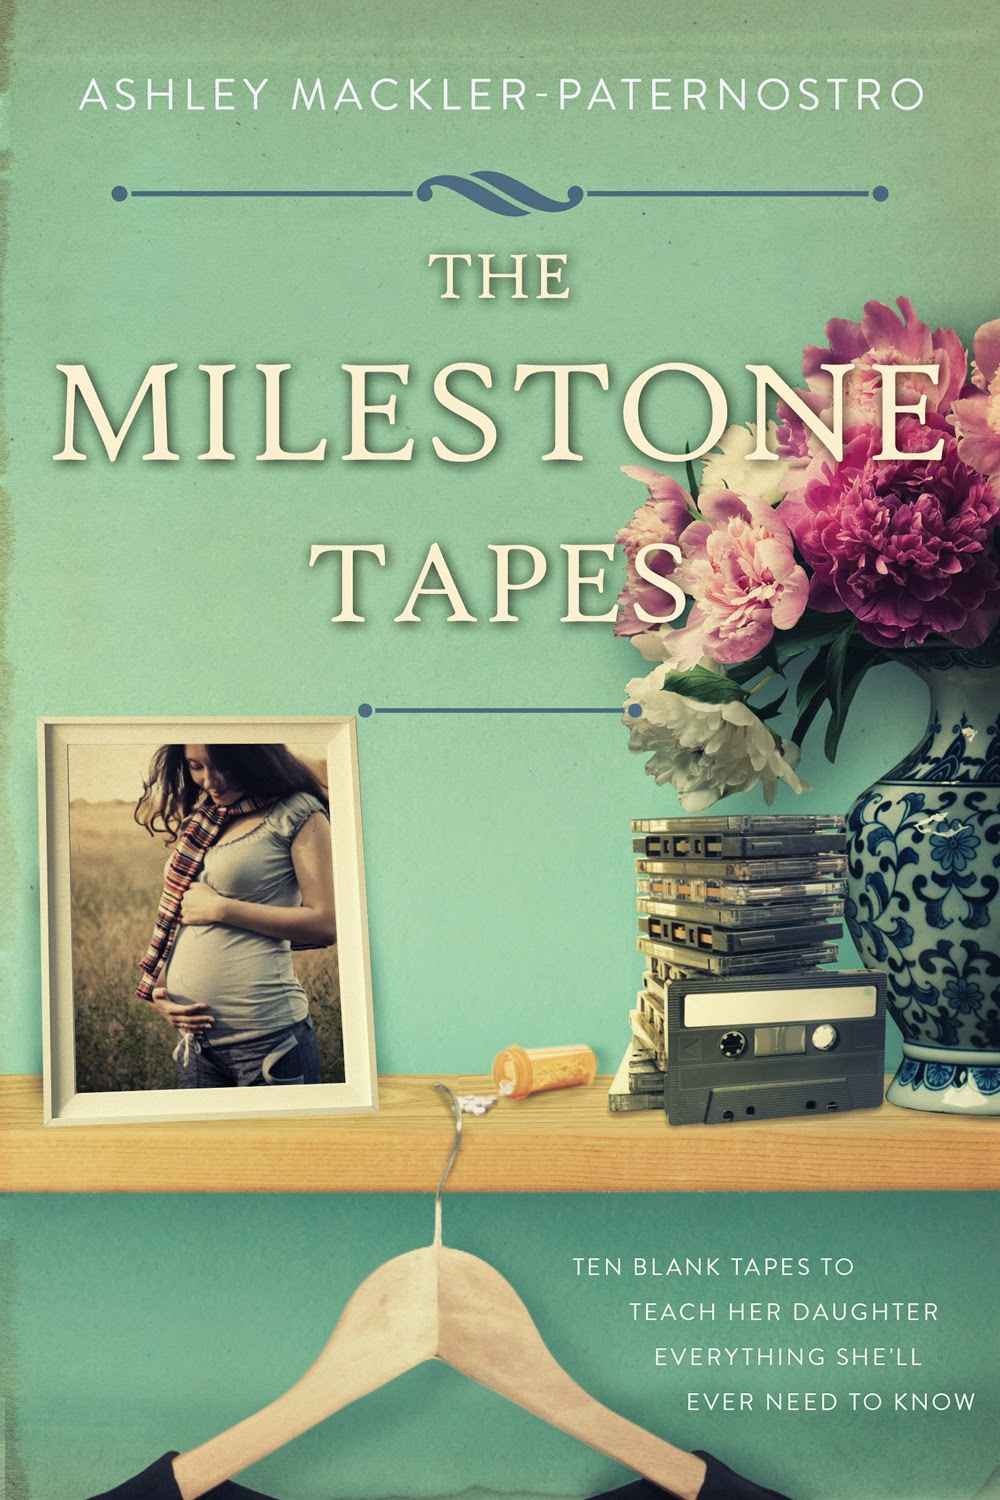 The Milestone Tapes by Ashley Mackler-Paternostro